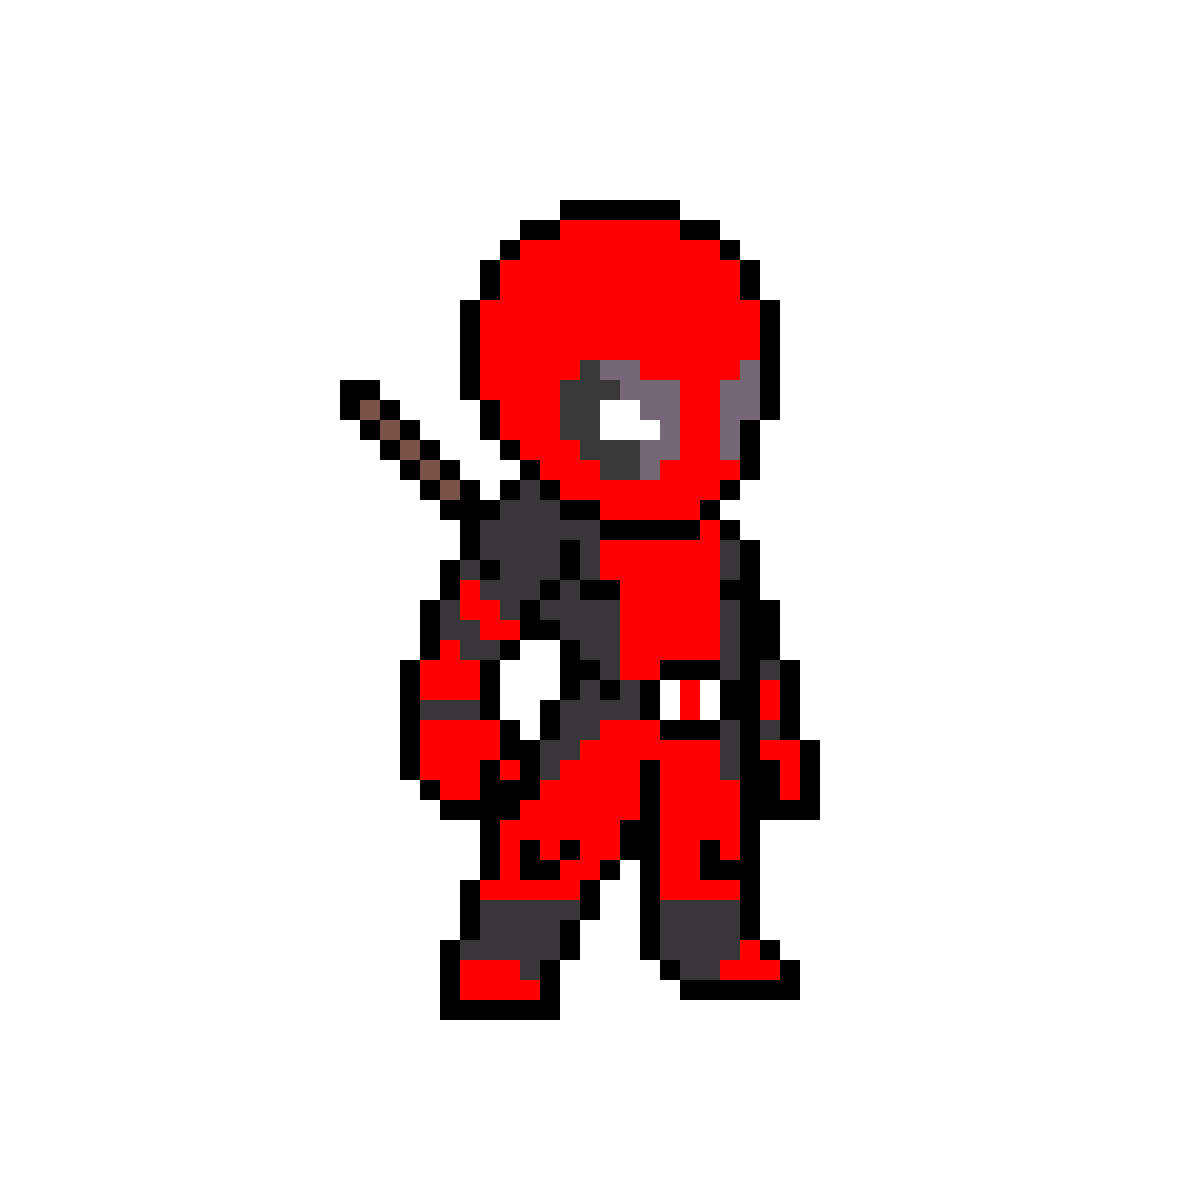 Spiderman Art Angle Deadpool Pixel Free Clipart HQ PNG Image